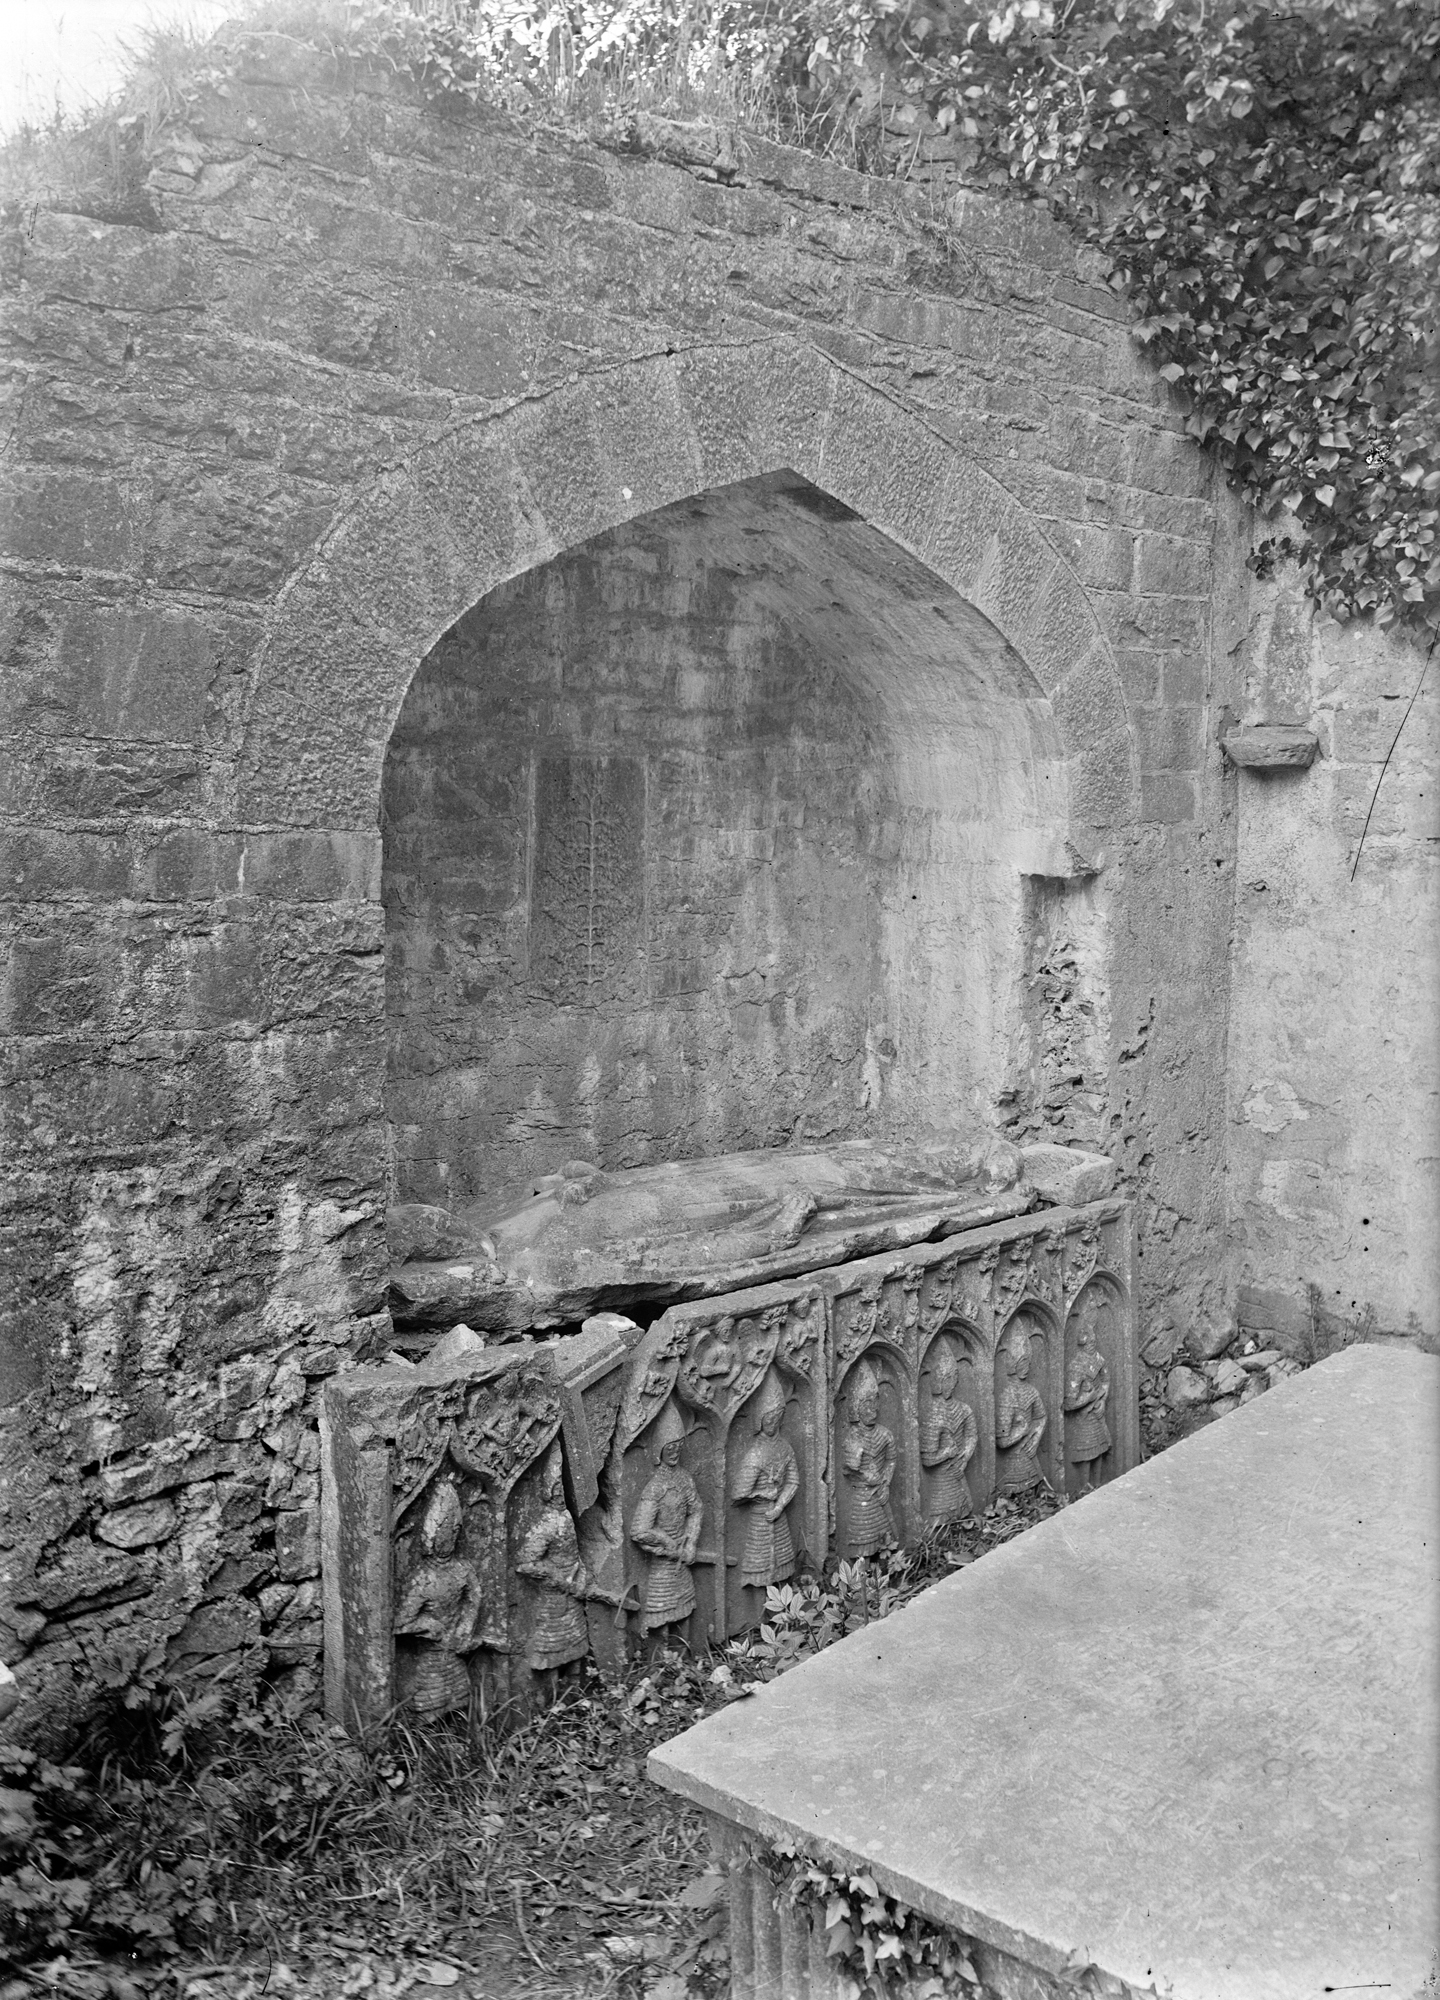 The Tomb of King Connor, Roscommon, Co. Roscommon